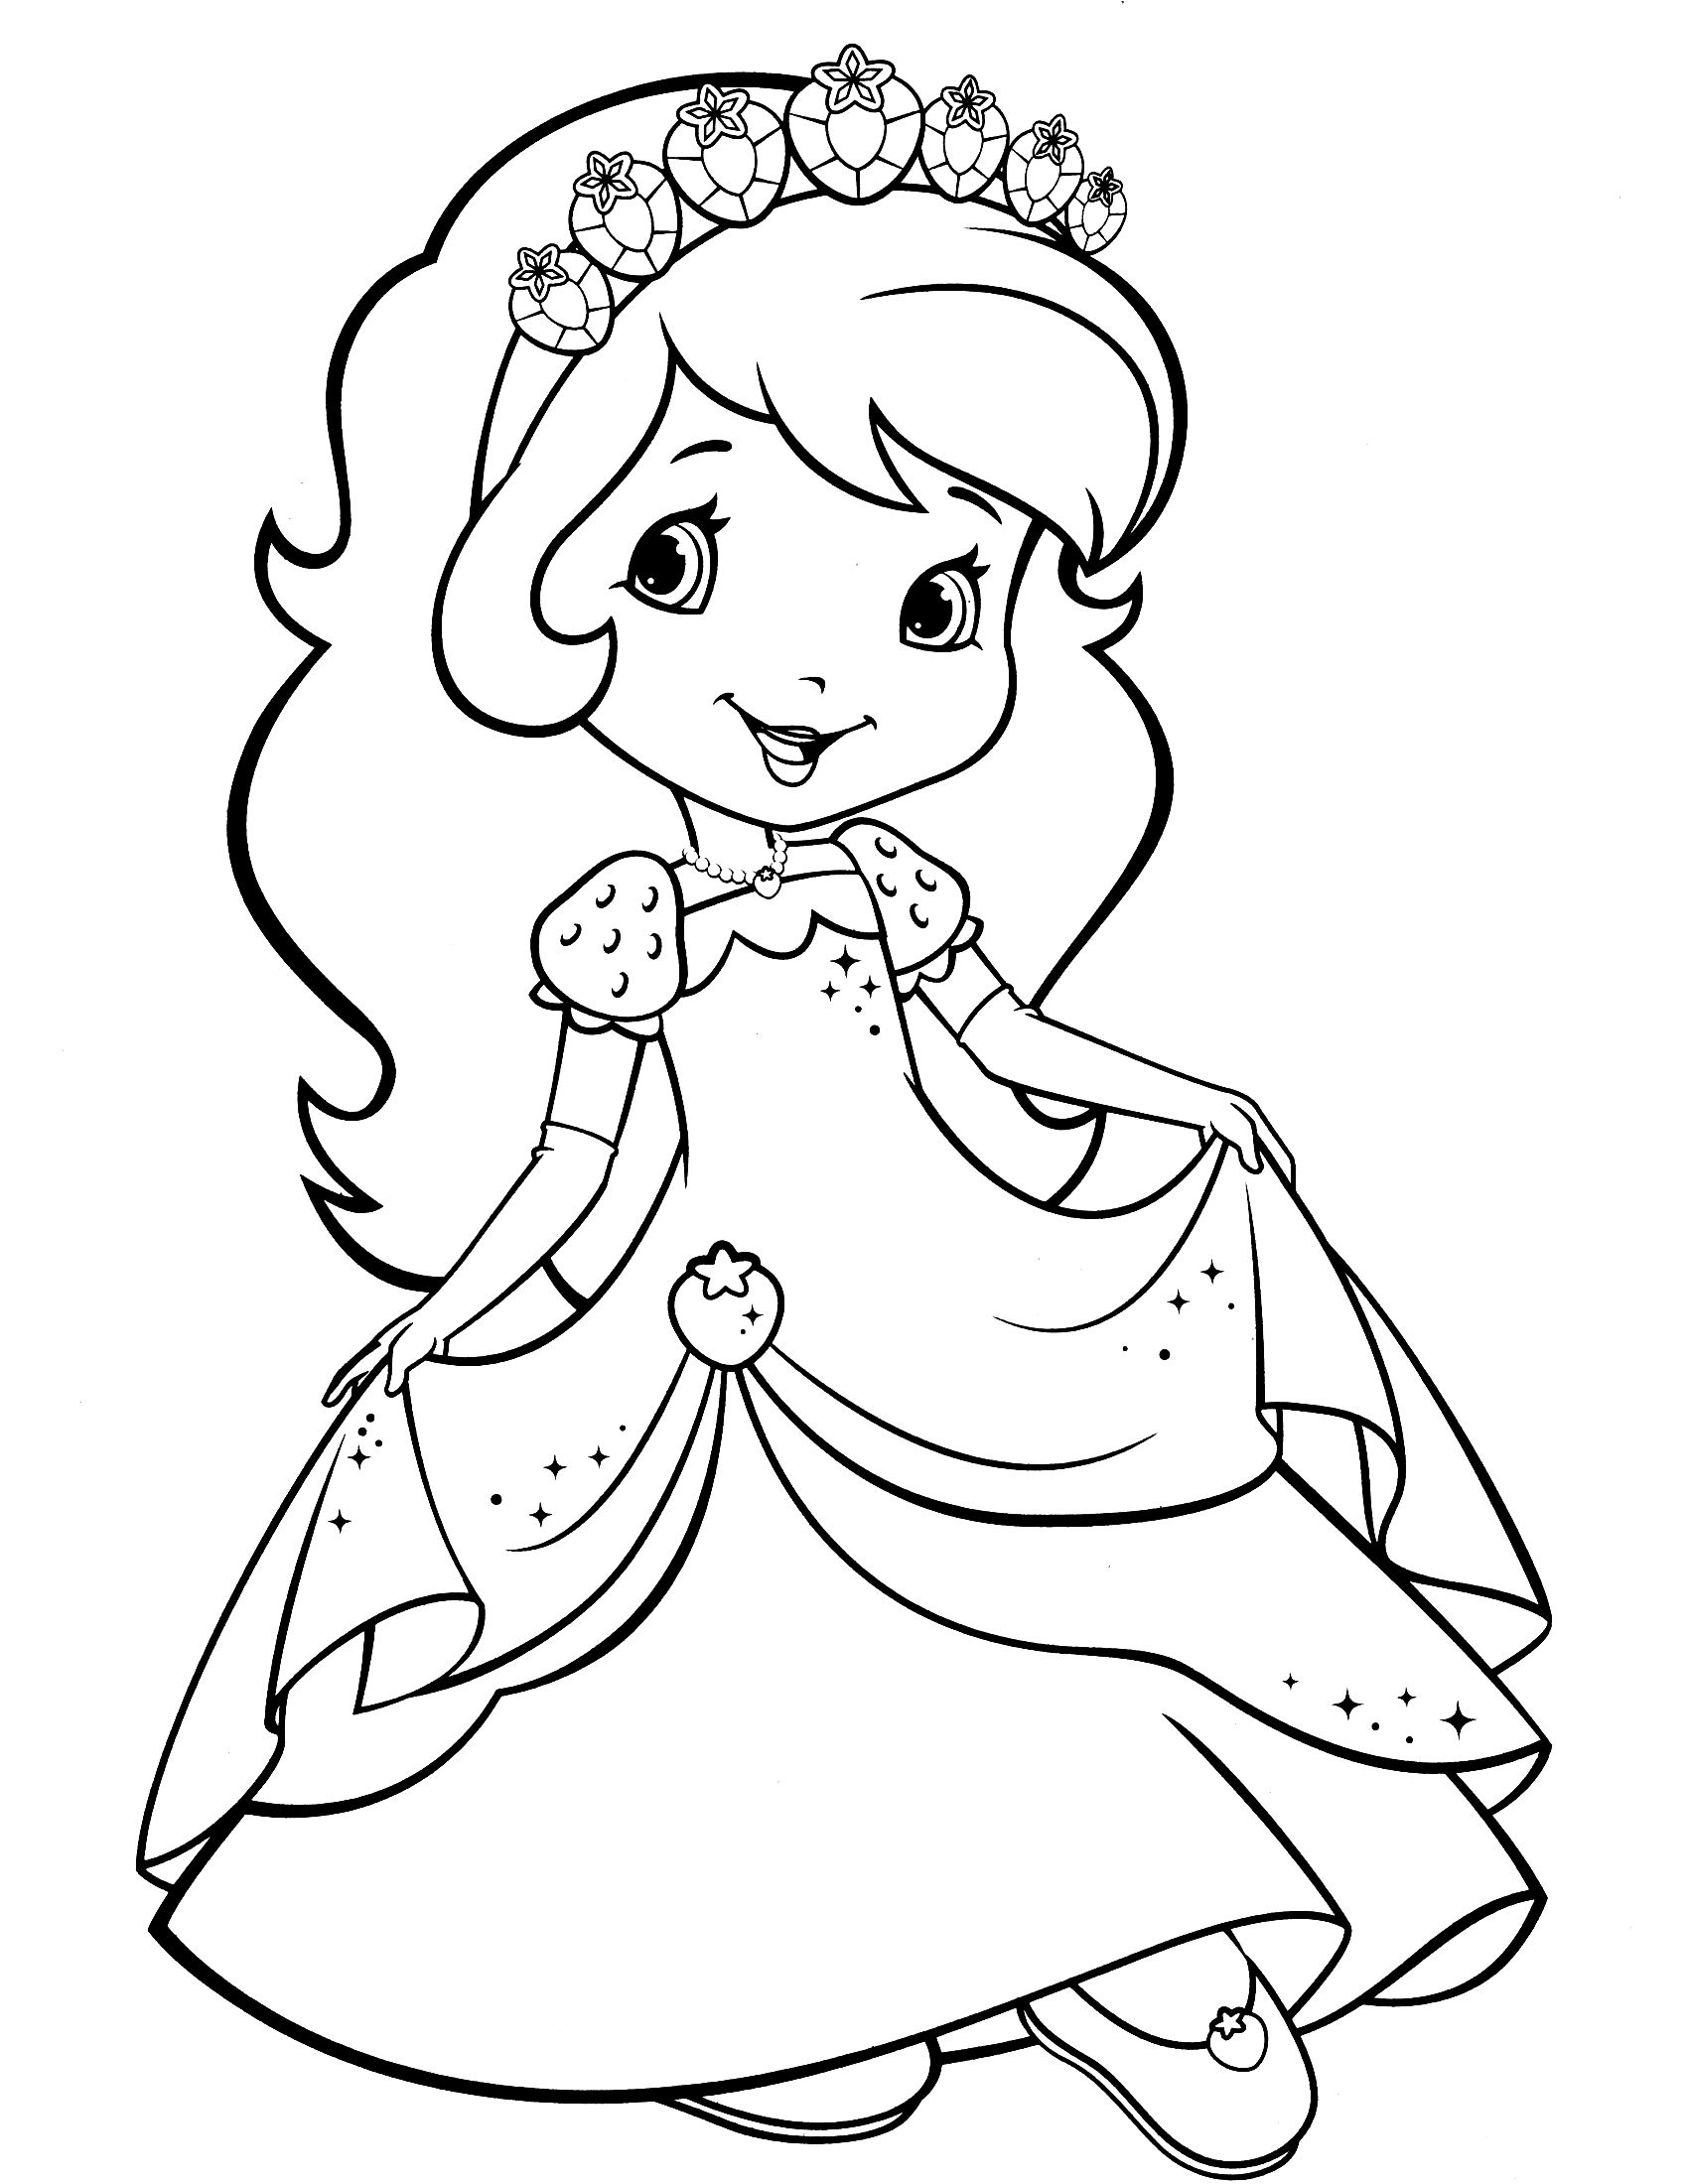 Universal image for strawberry shortcake printable coloring pages